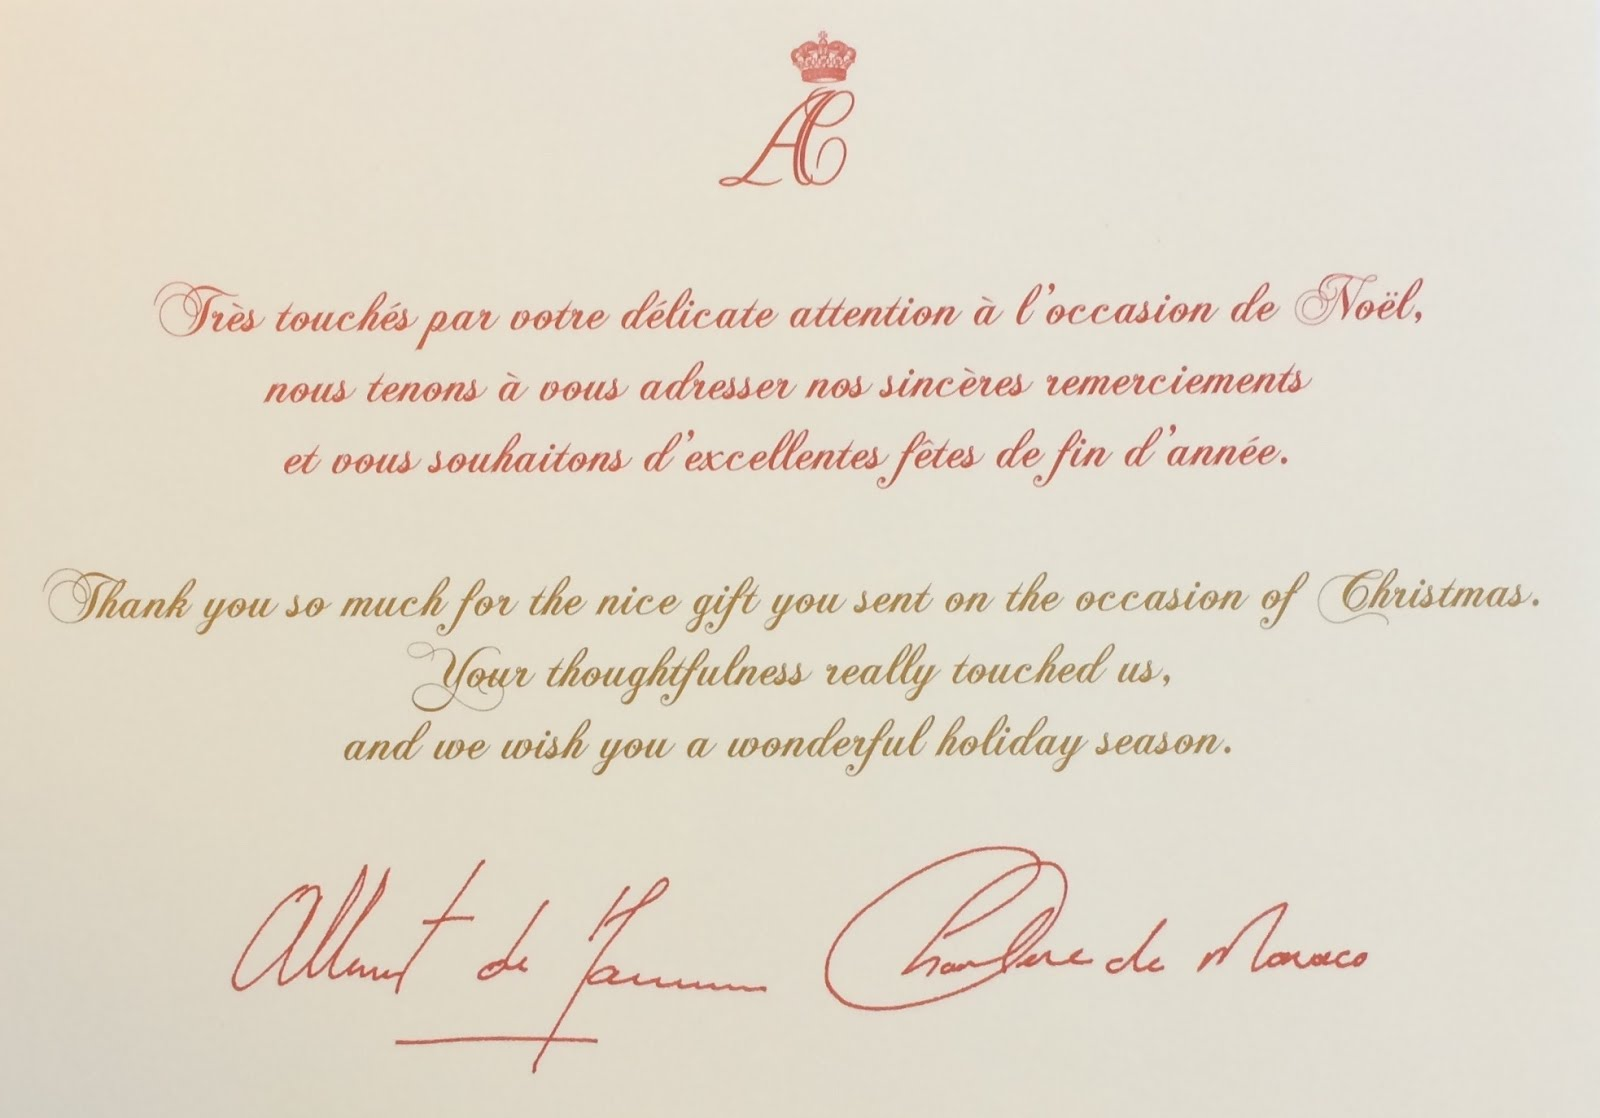 Gerts royals monaco christmas card 20152016 other responses from monaco christmas replies at bottom of page negle Image collections